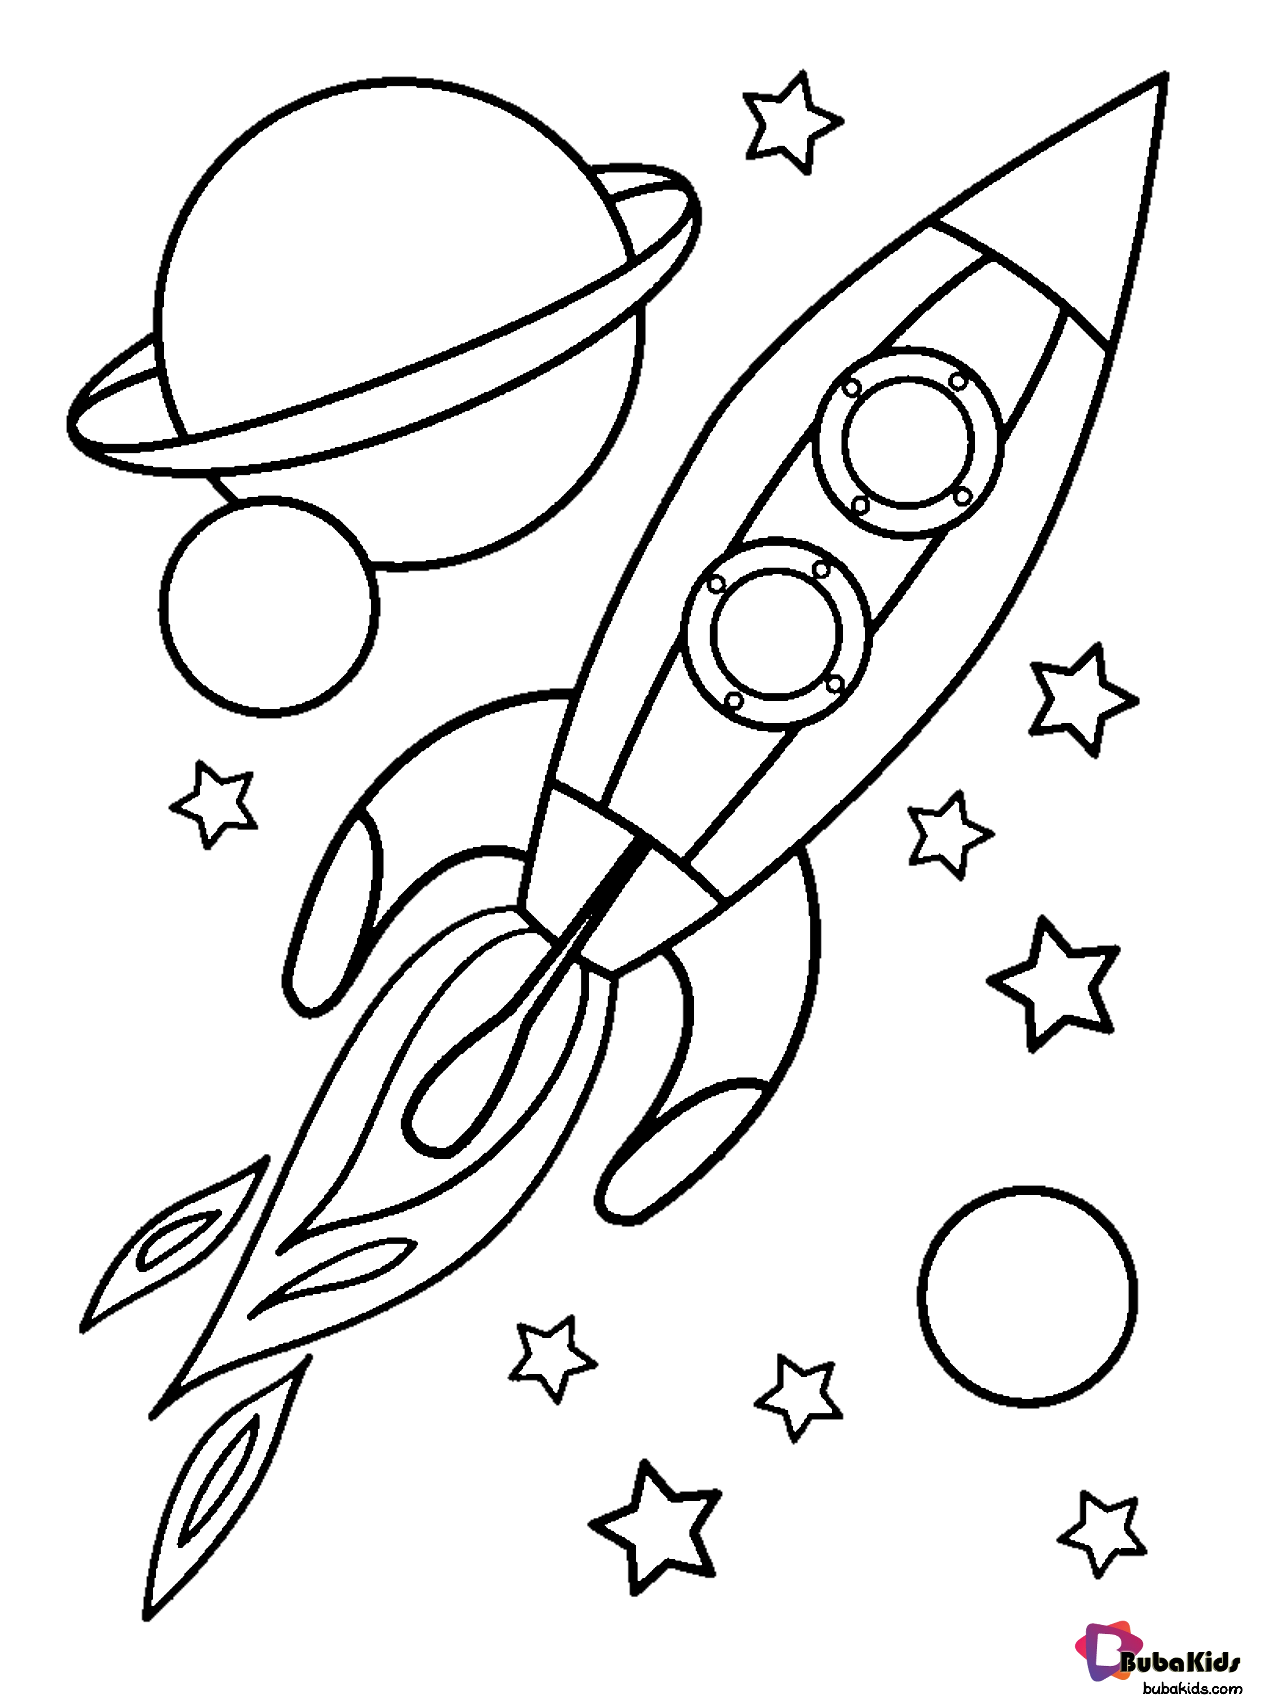 space coloring free easy to print space coloring pages tulamama coloring space 1 1